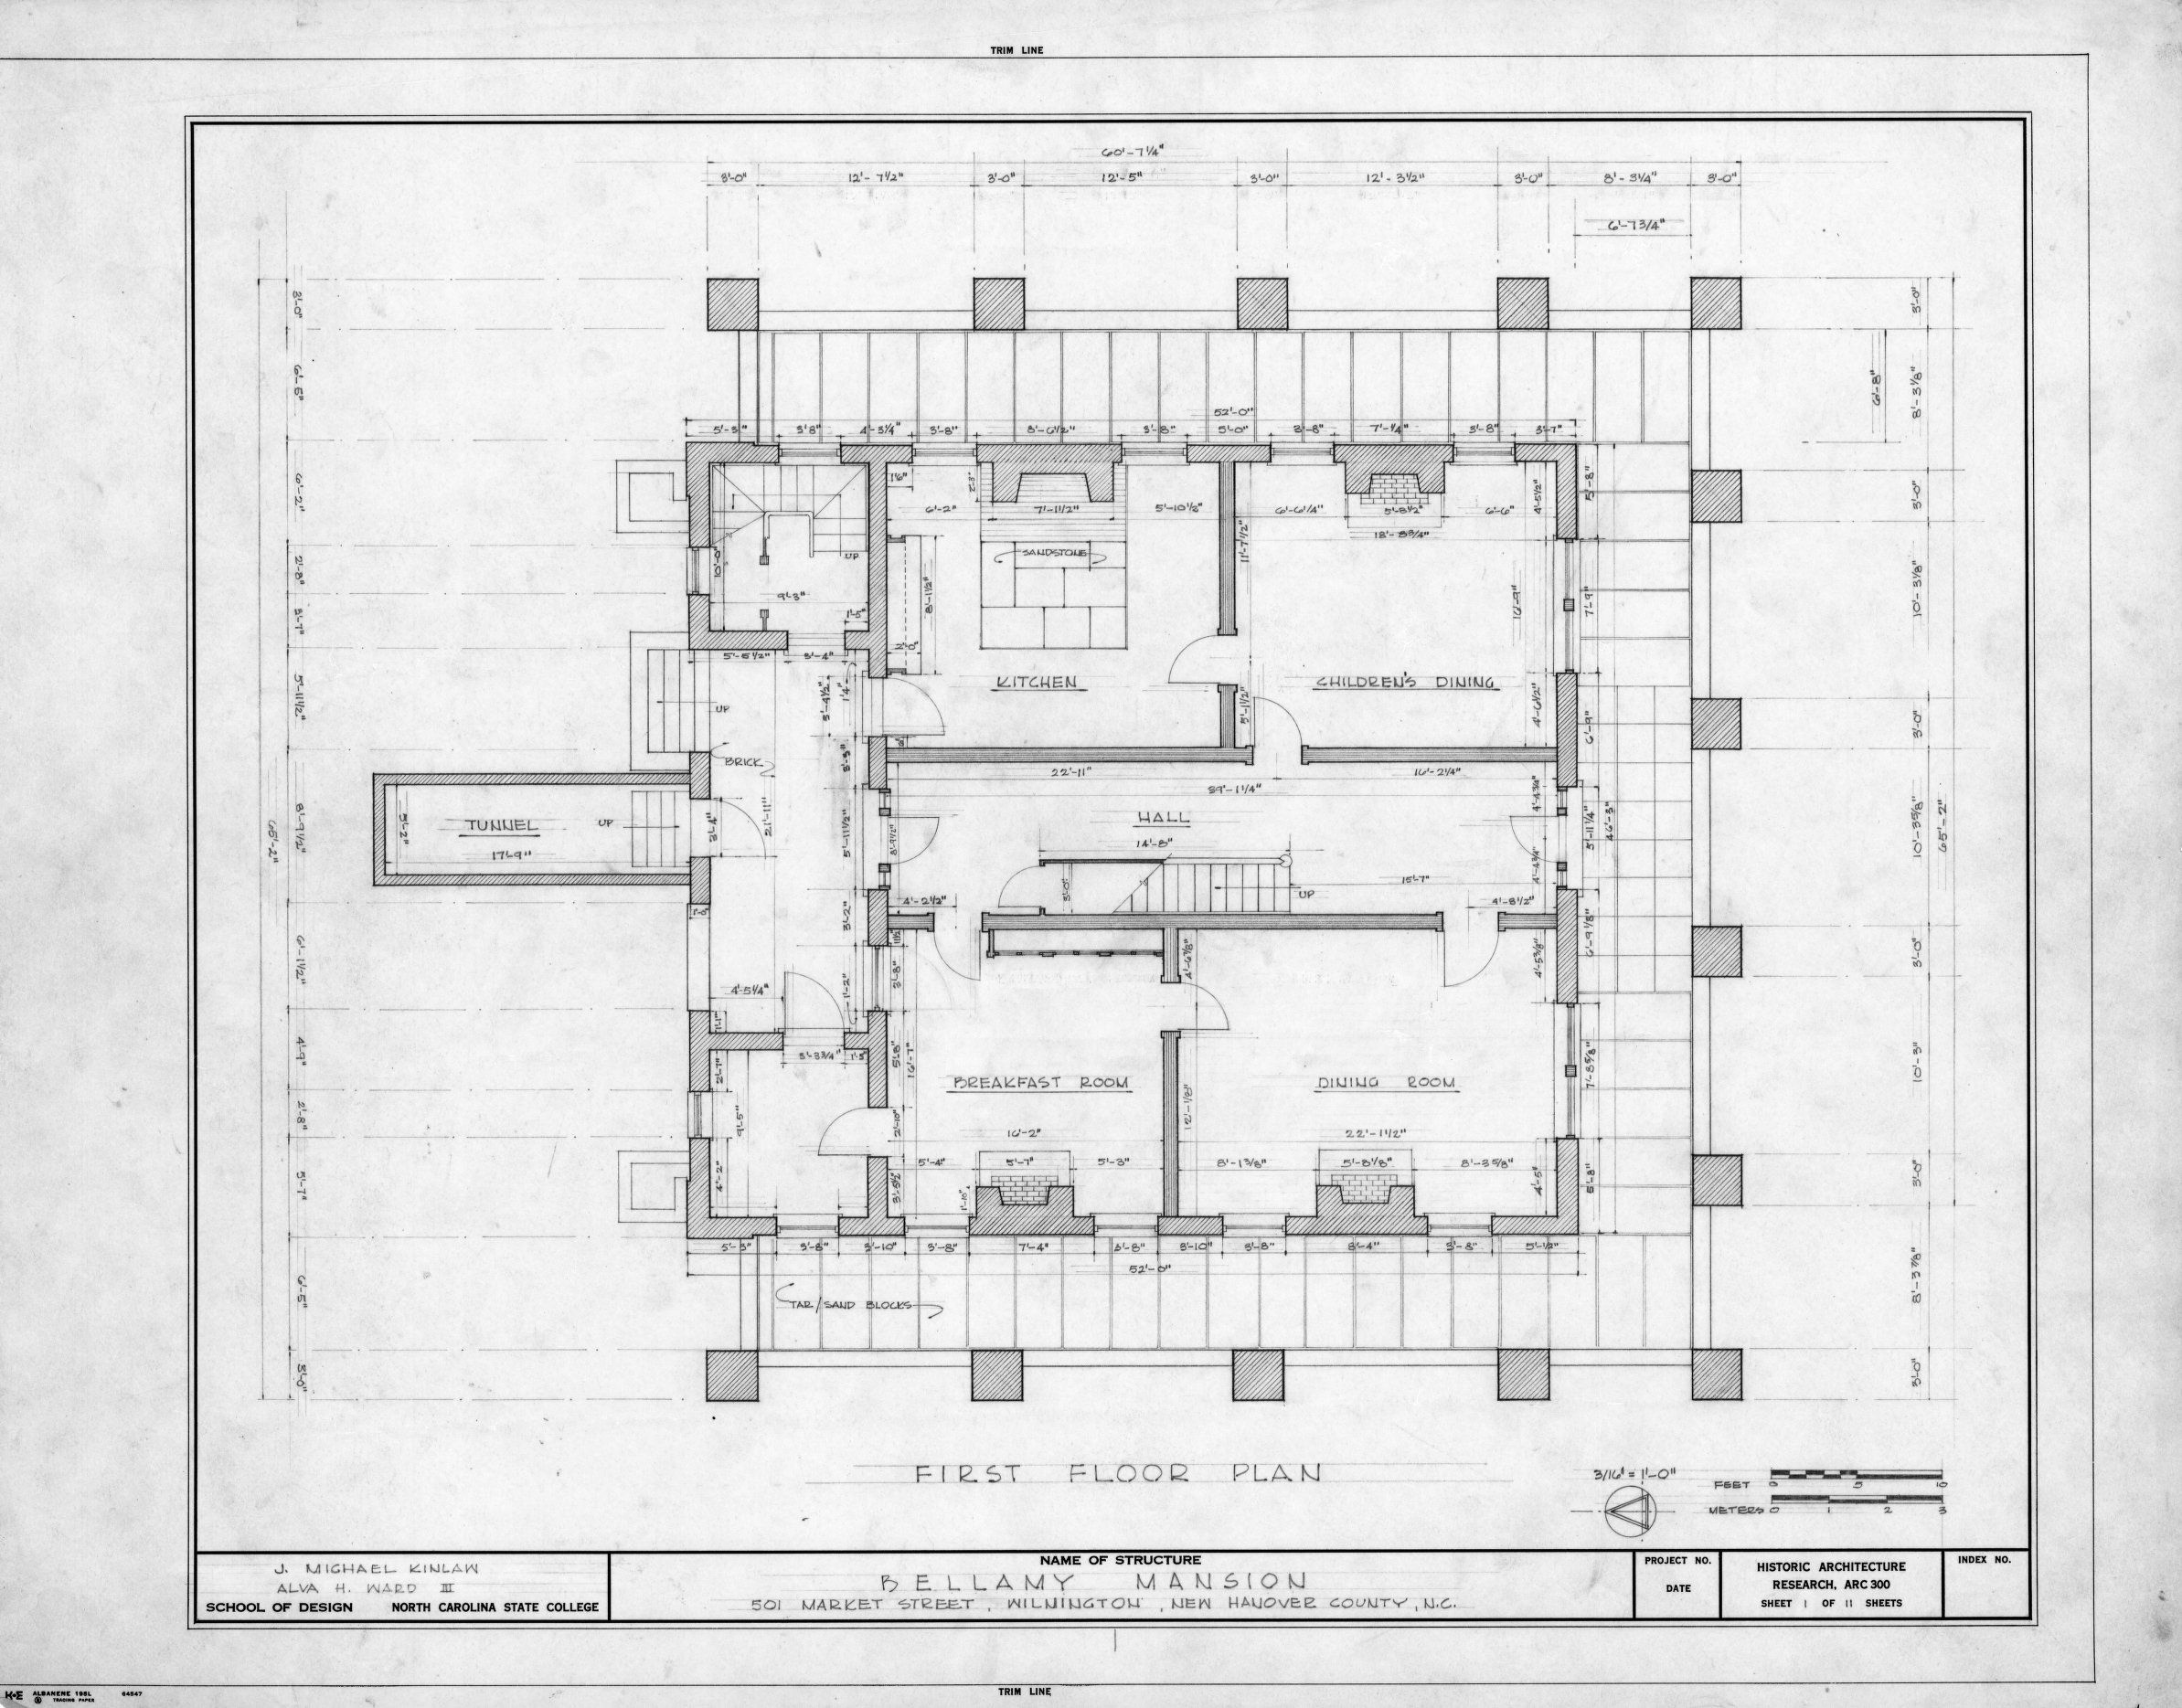 brilliant home planners house plans. Brilliant Floor Plans For Mansions On With 3115 Ralston Avenue  Hillsborough California Planning Home Design Ideas Interior First floor plan Bellamy Mansion Wilmington North Carolina